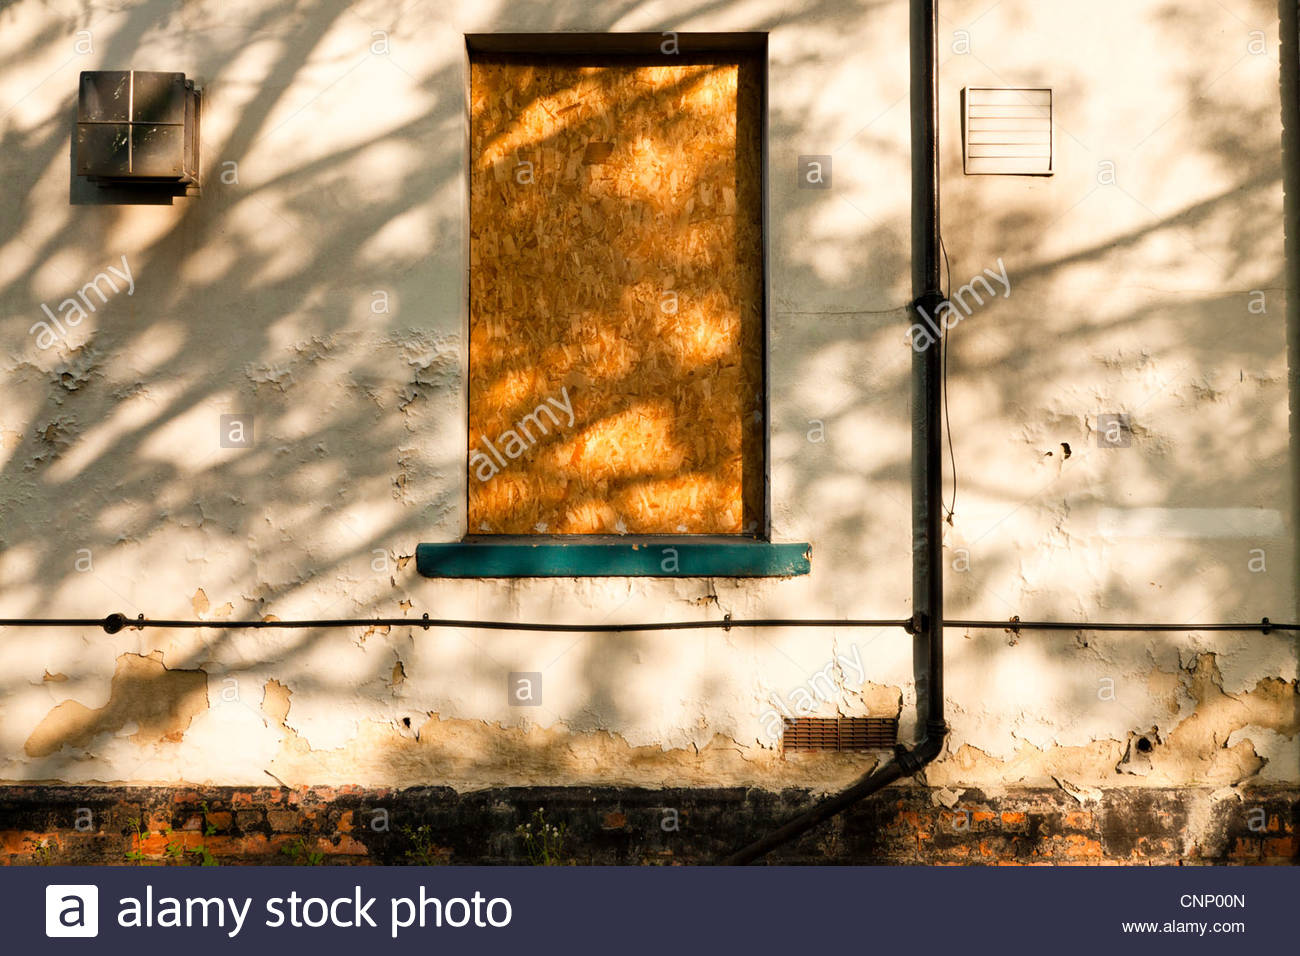 Sunlight through a tree casting shadows on an old disused building with a boarded up window, England, UK Stock Photo